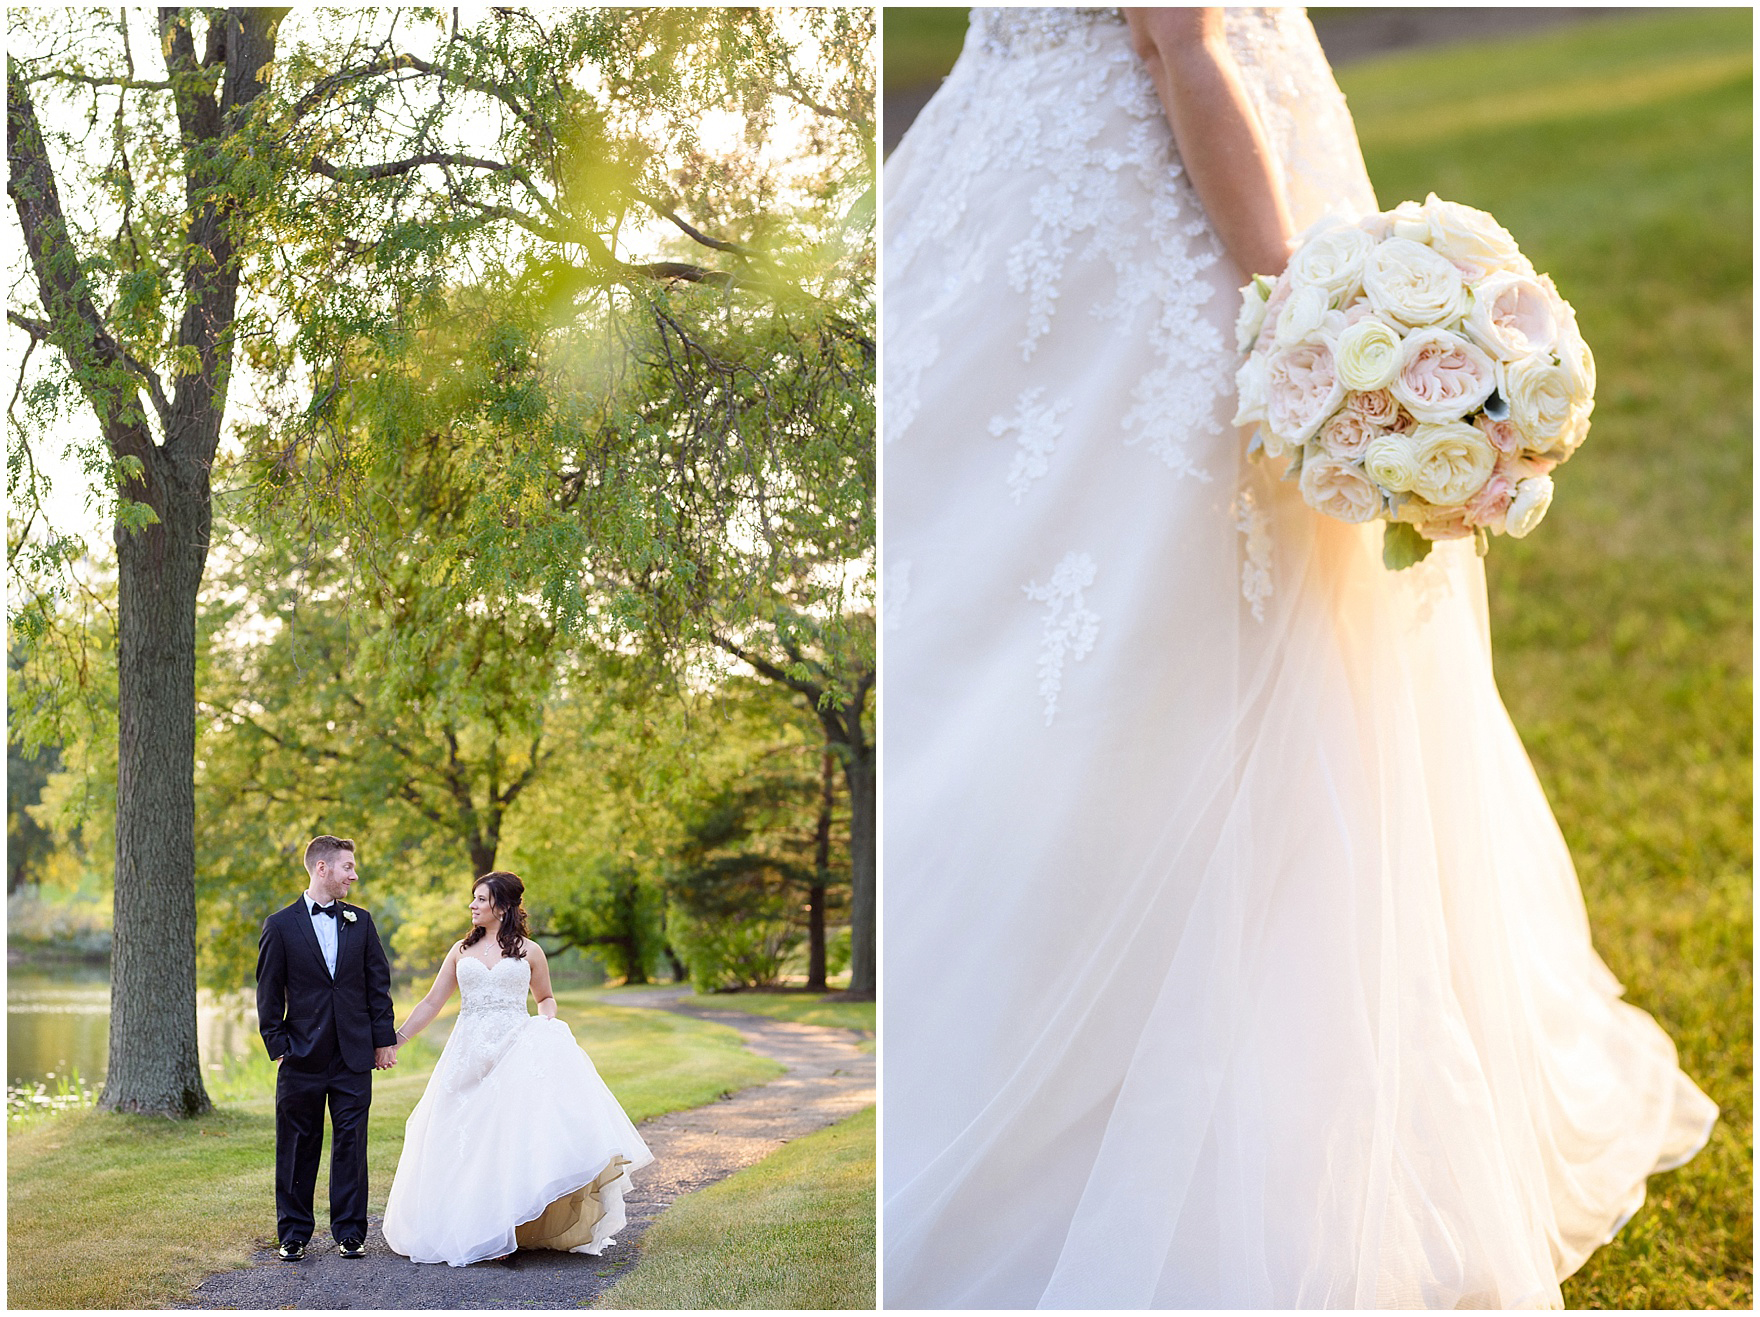 Bride and groom portraits during a Hotel Arista Naperville wedding.